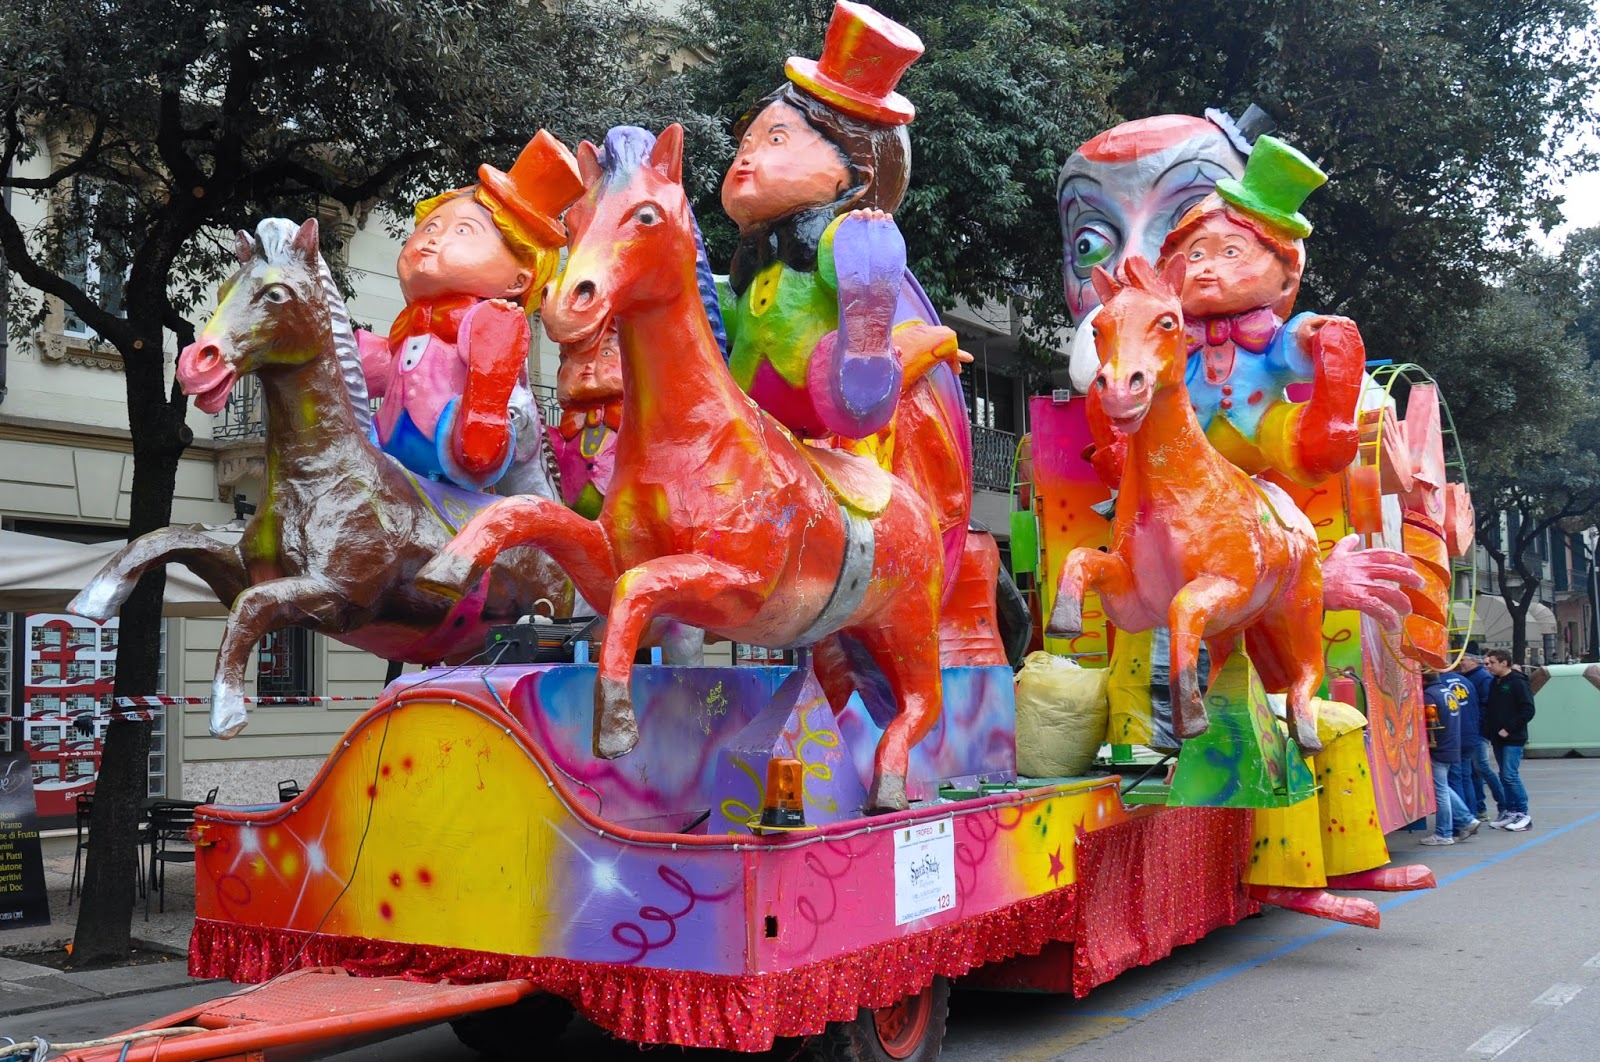 A bright float waiting for the parade for Verona's main Carnival event - Venerdi Gnocolar - to start